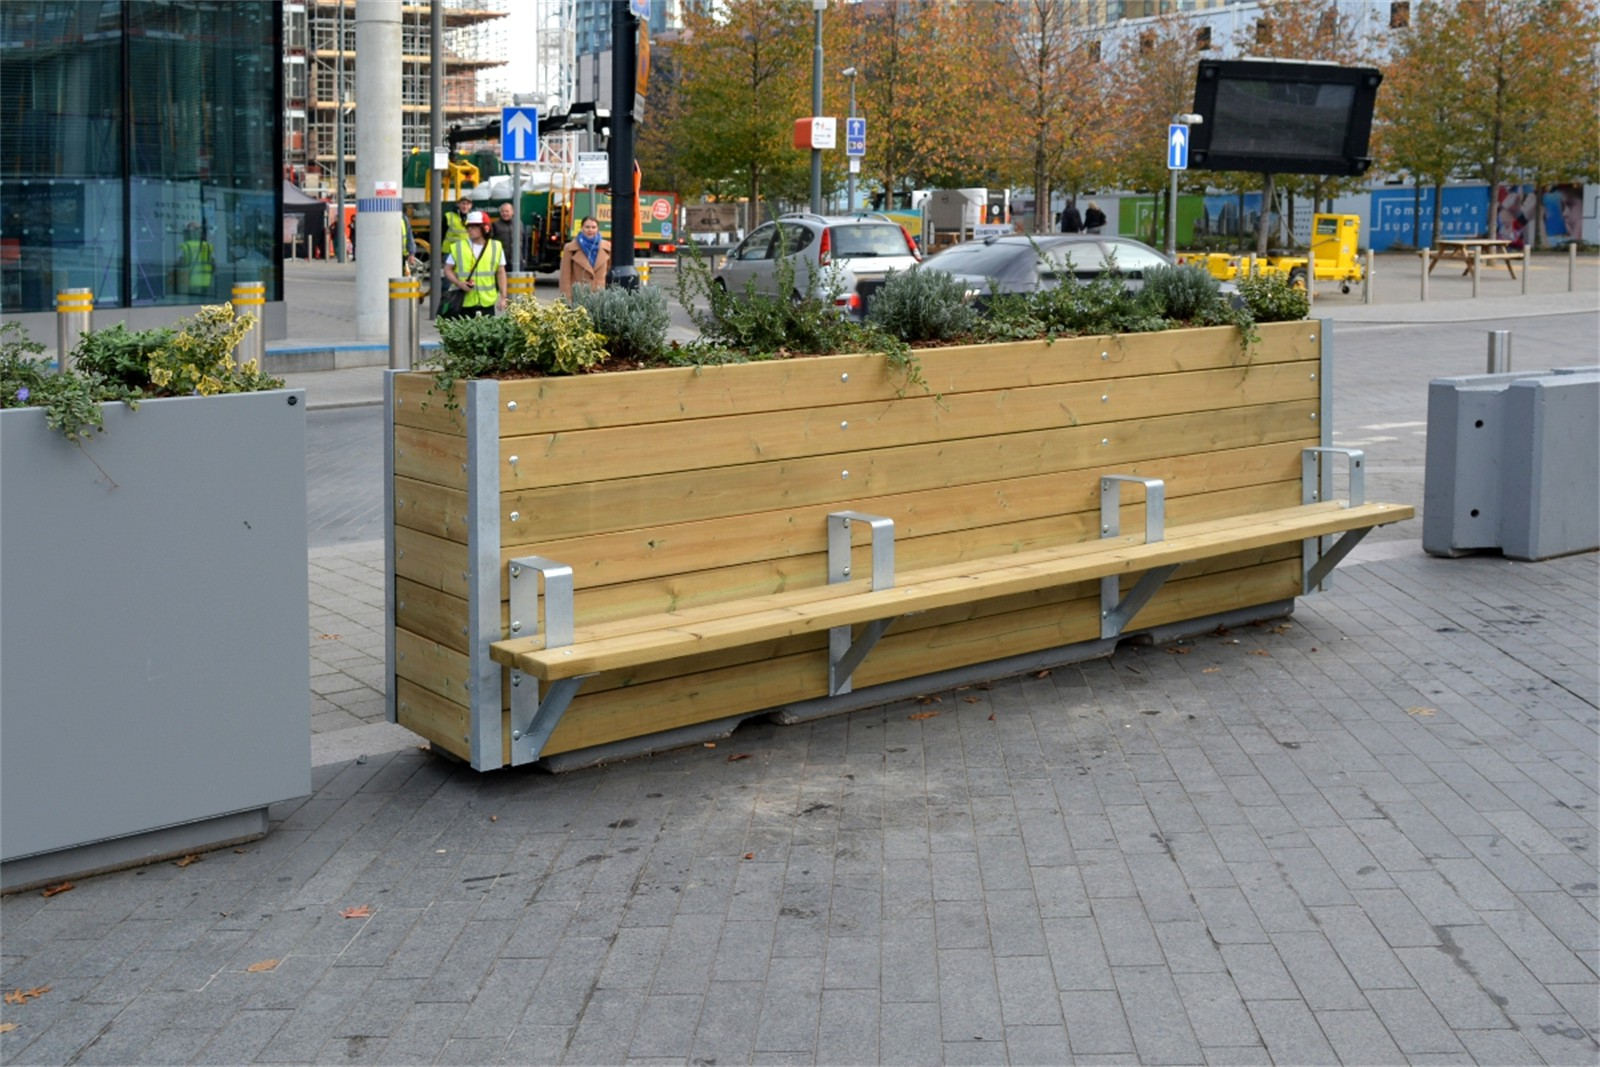 20pmw51 - Mews planter with Henley bench